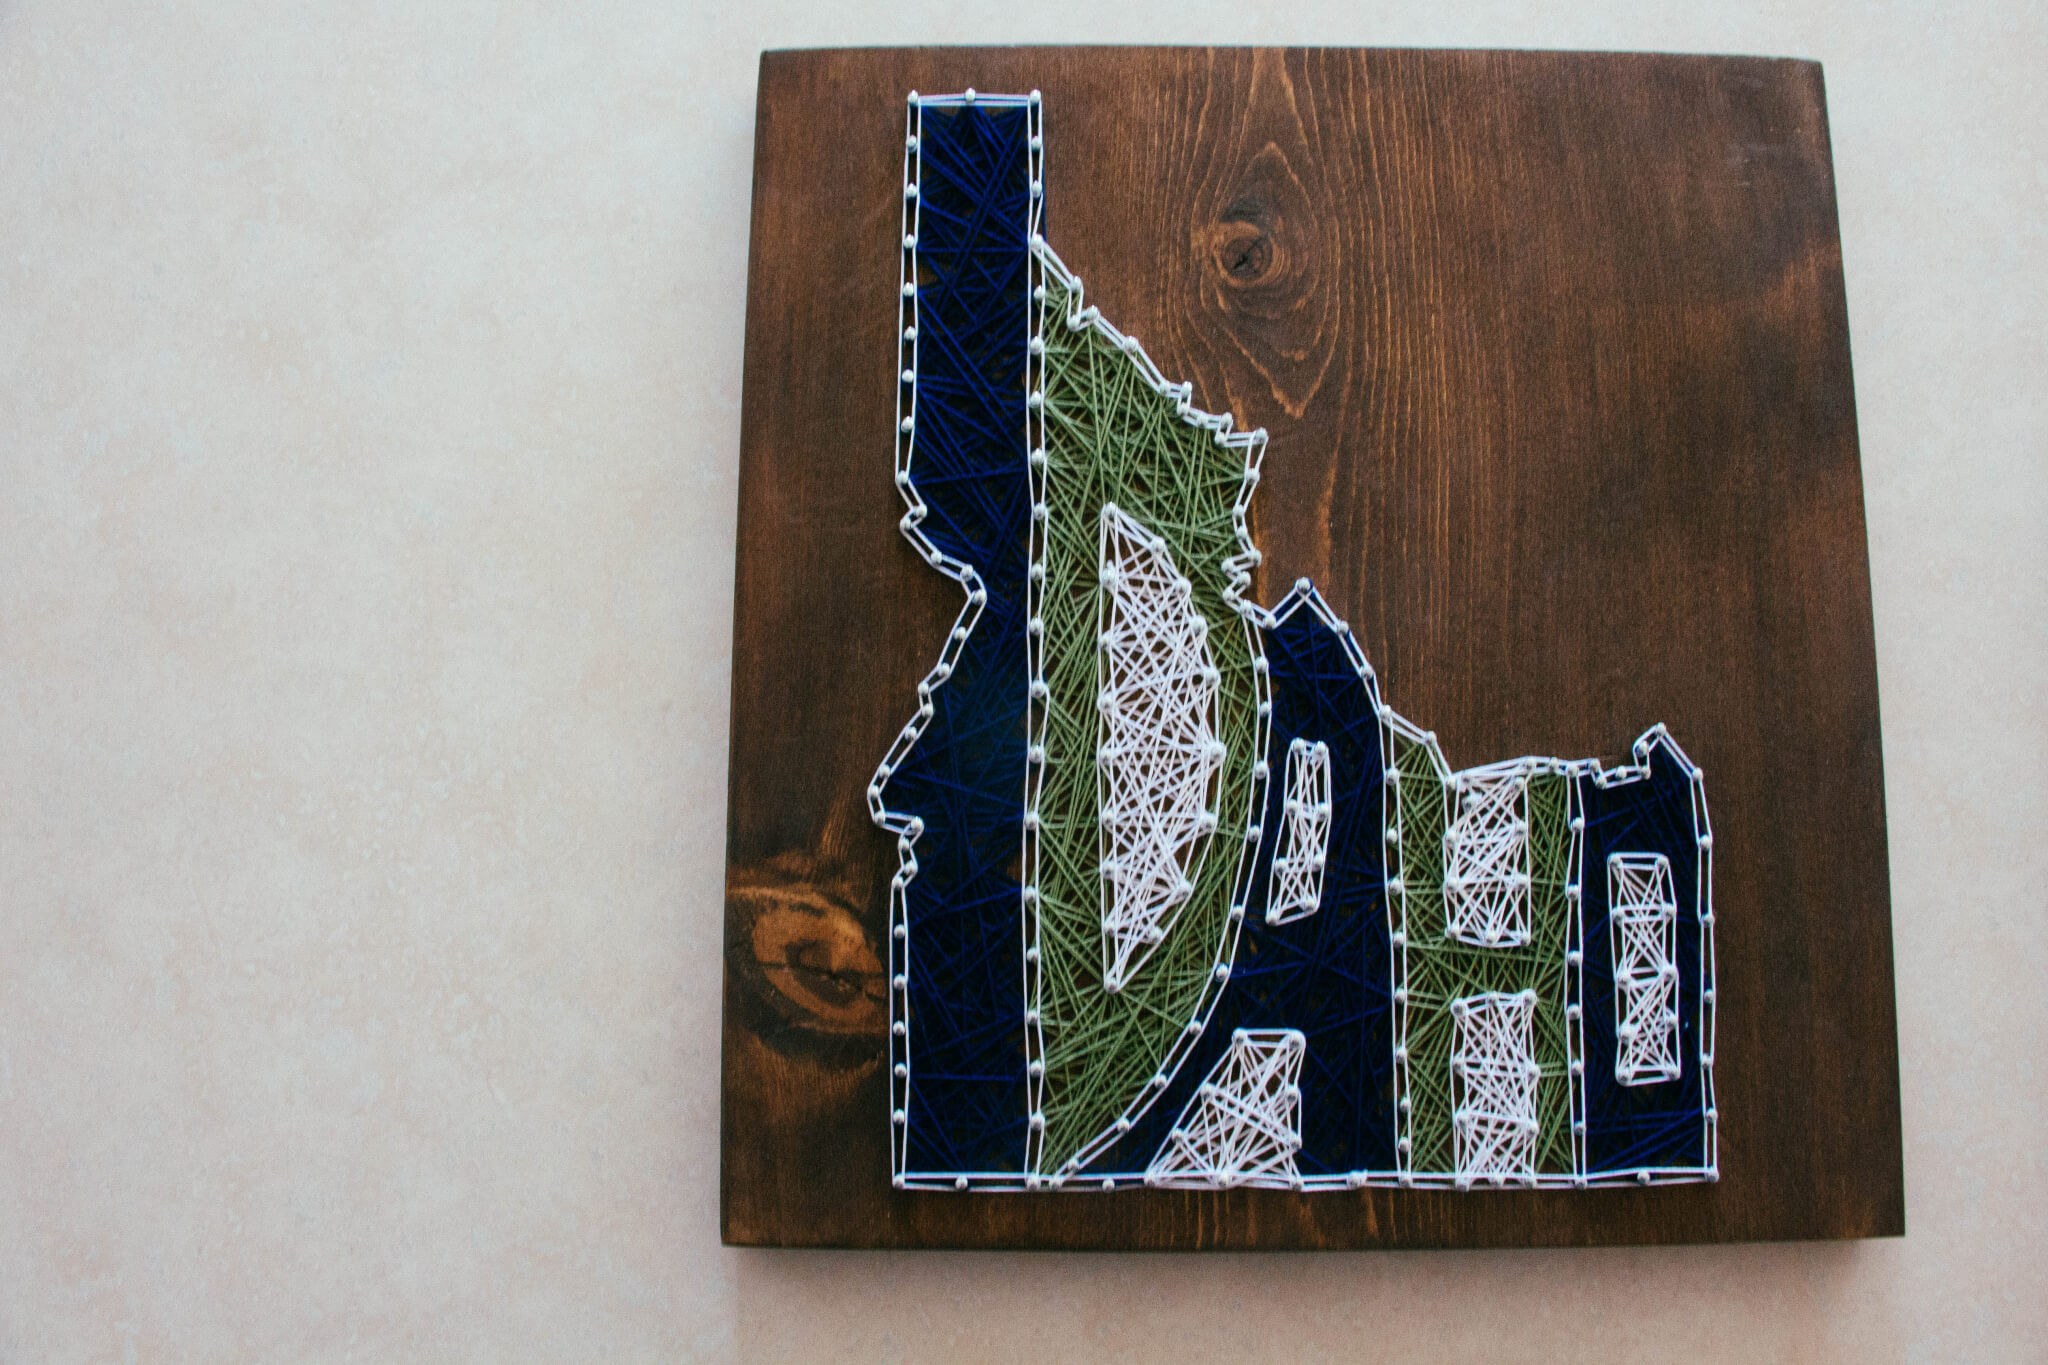 KayLay string art in Rexburg